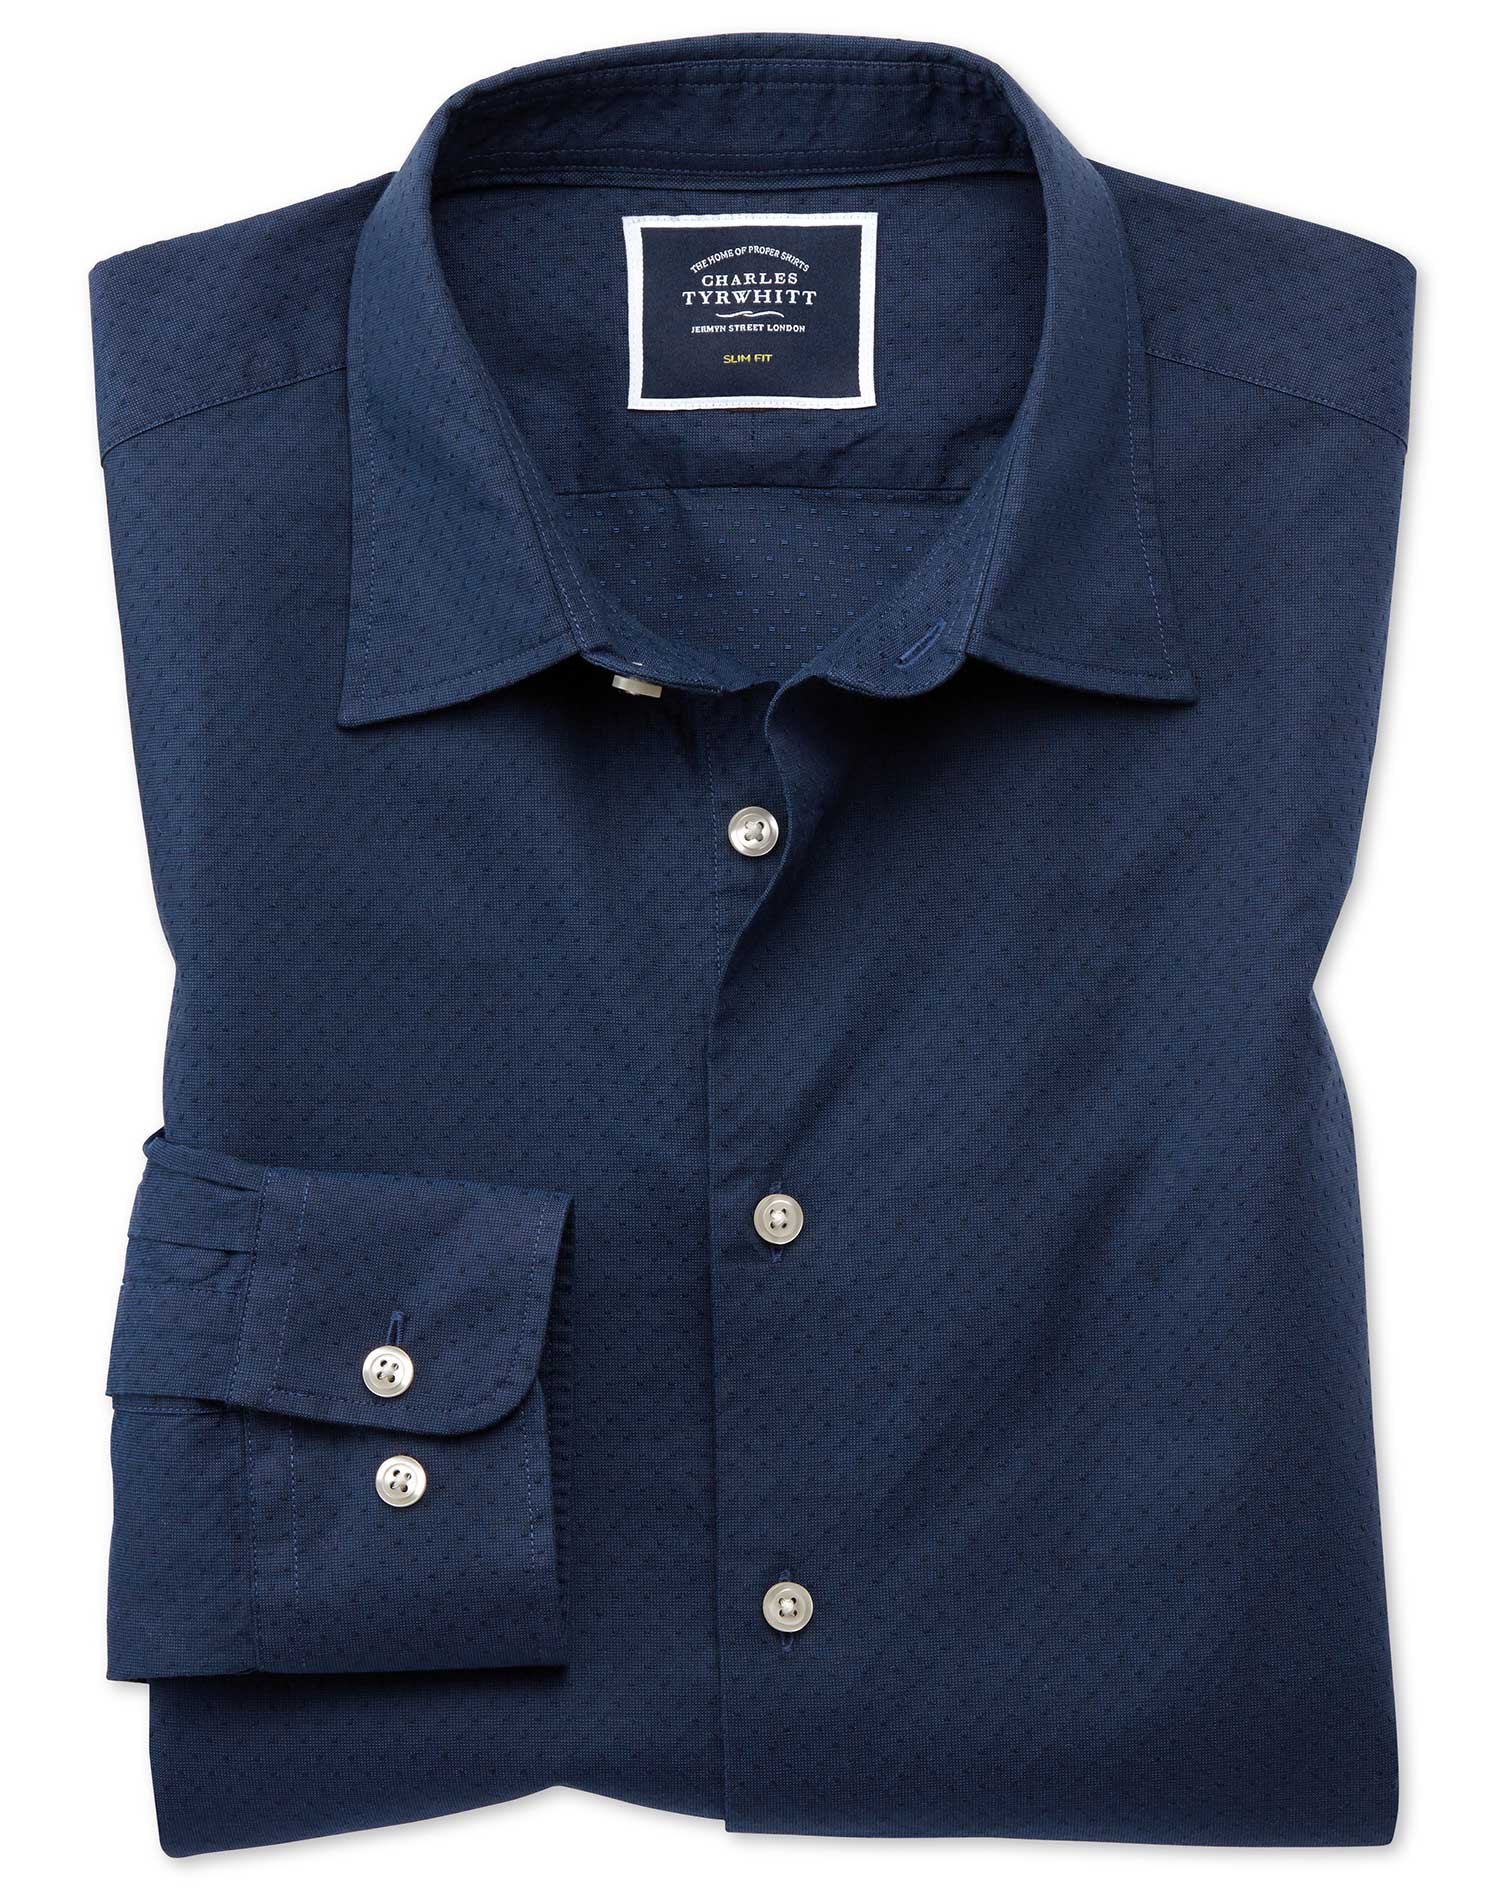 Classic Fit Dark Blue Spot Soft Texture Cotton Shirt Single Cuff Size XXXL by Charles Tyrwhitt